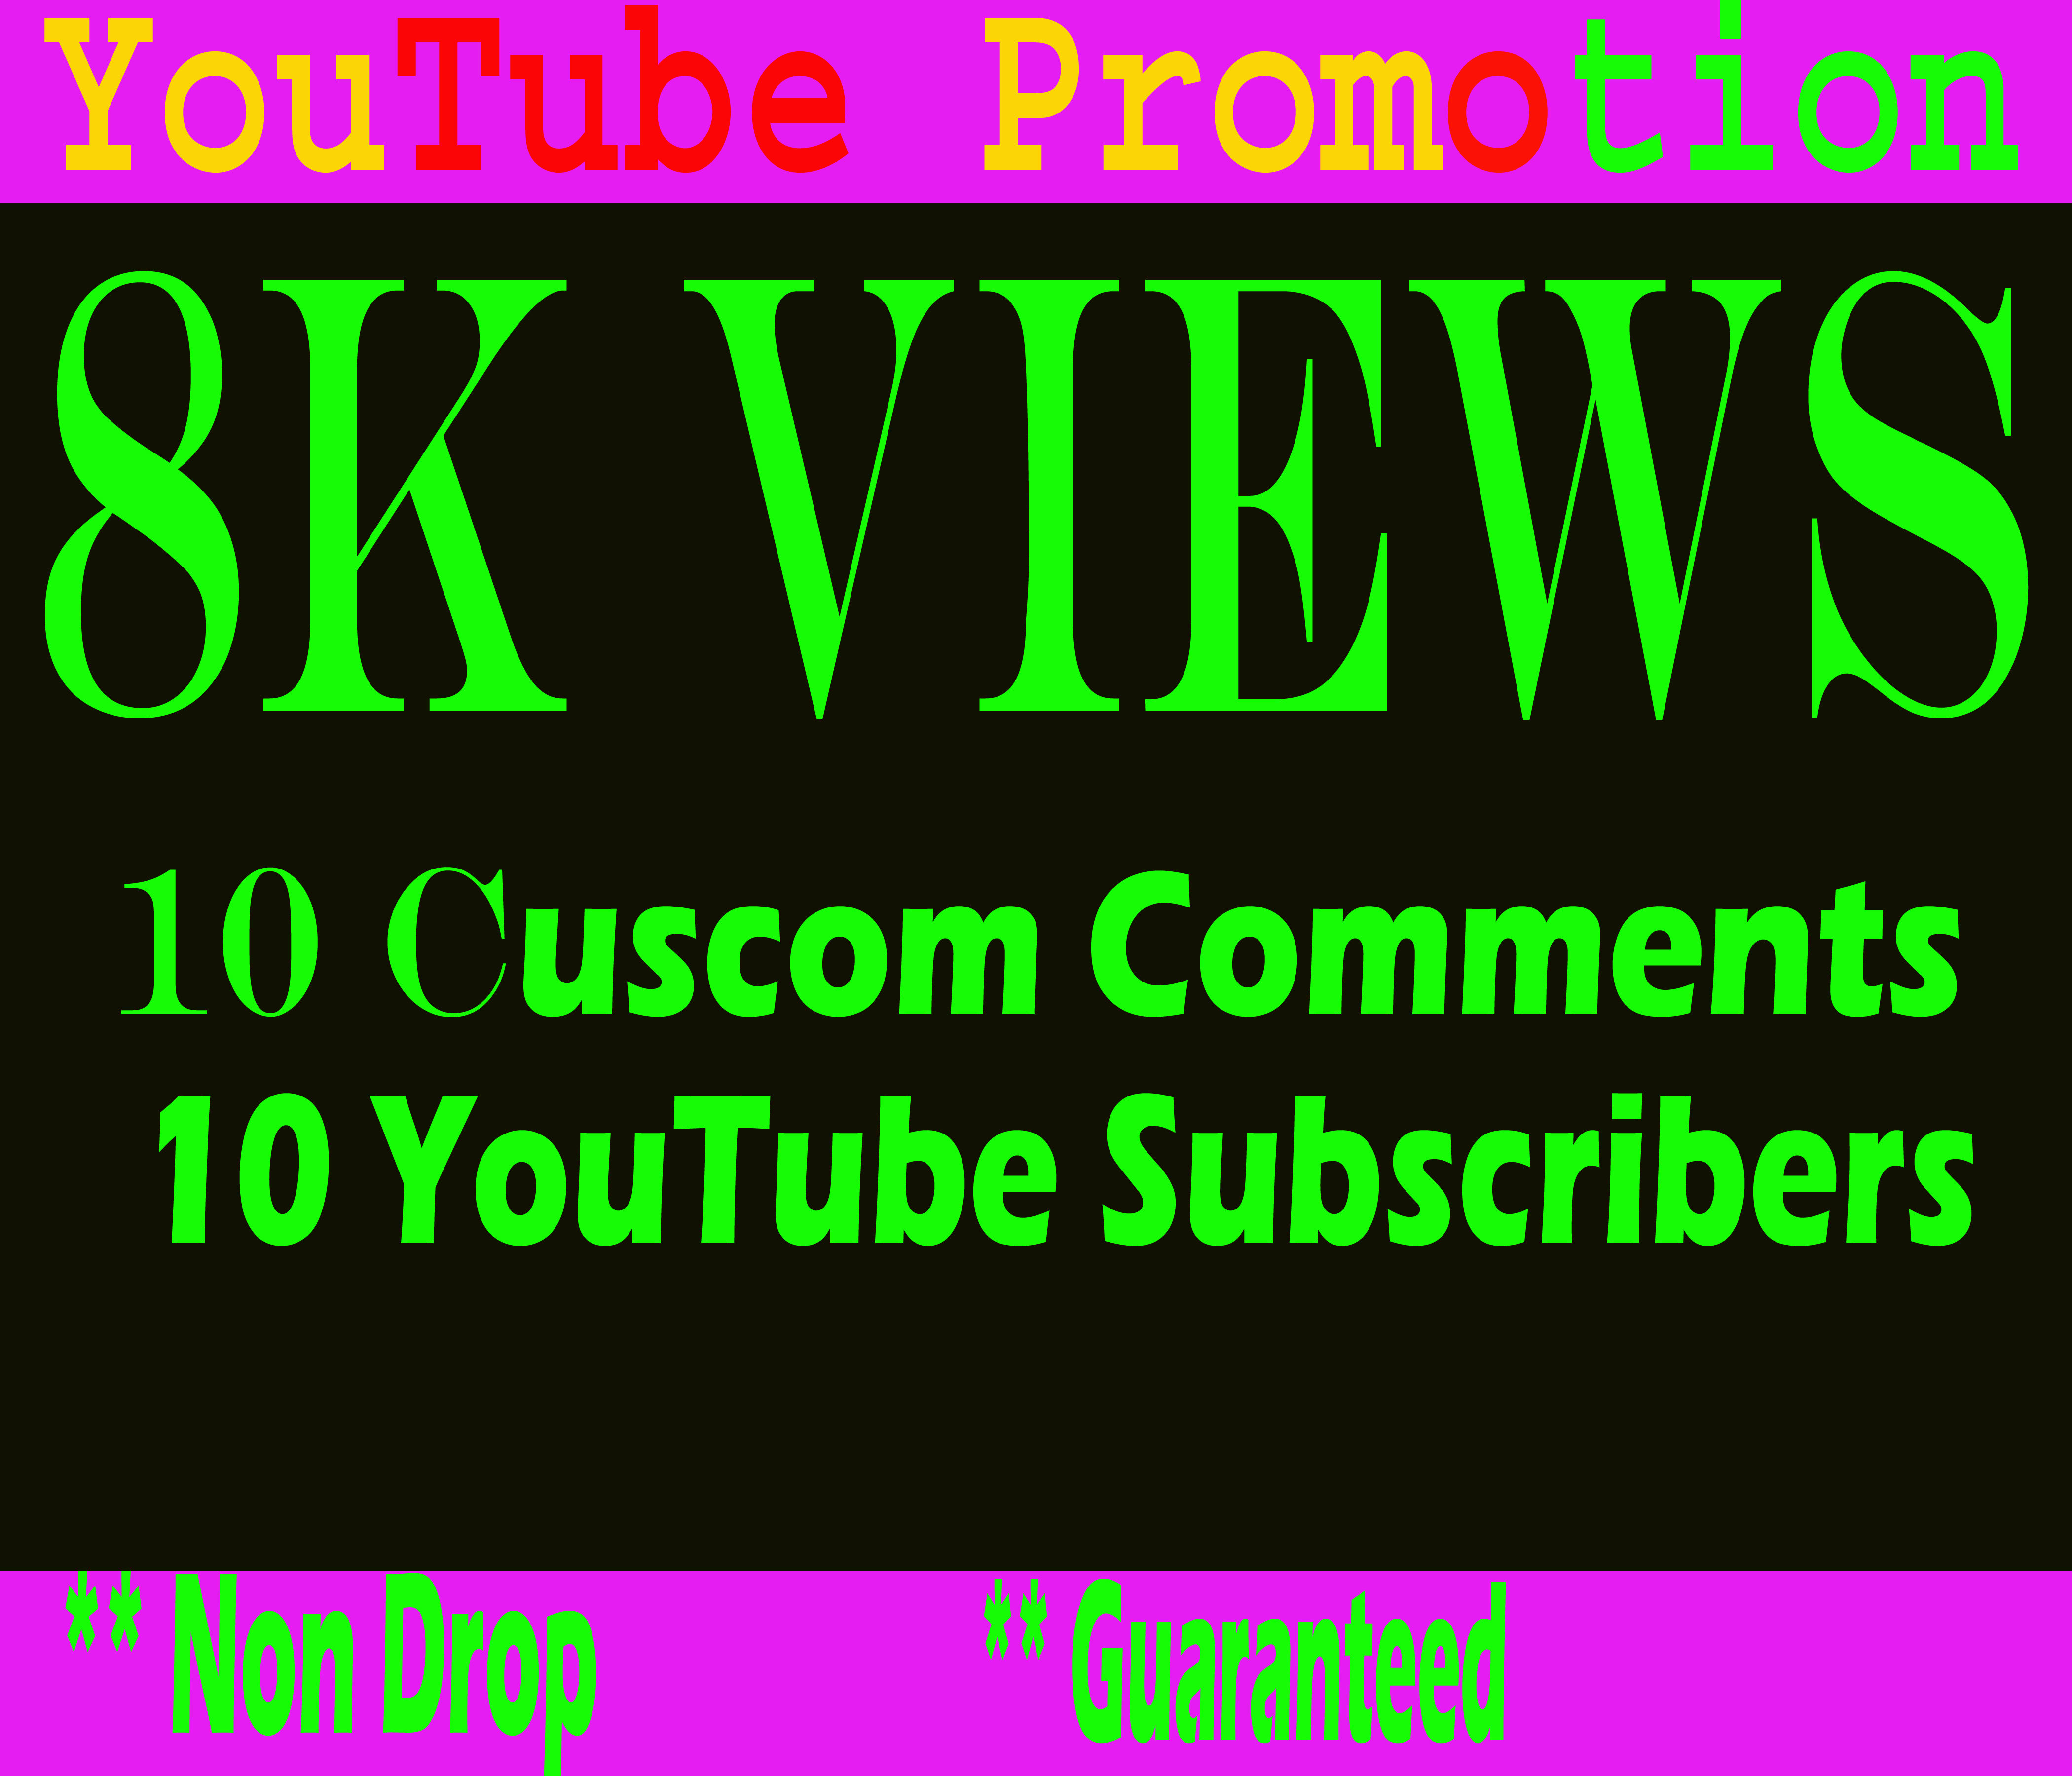 Guarantee and safe 8k or 8000 YouTube views and 10 YouTube comments and 10 subscribers